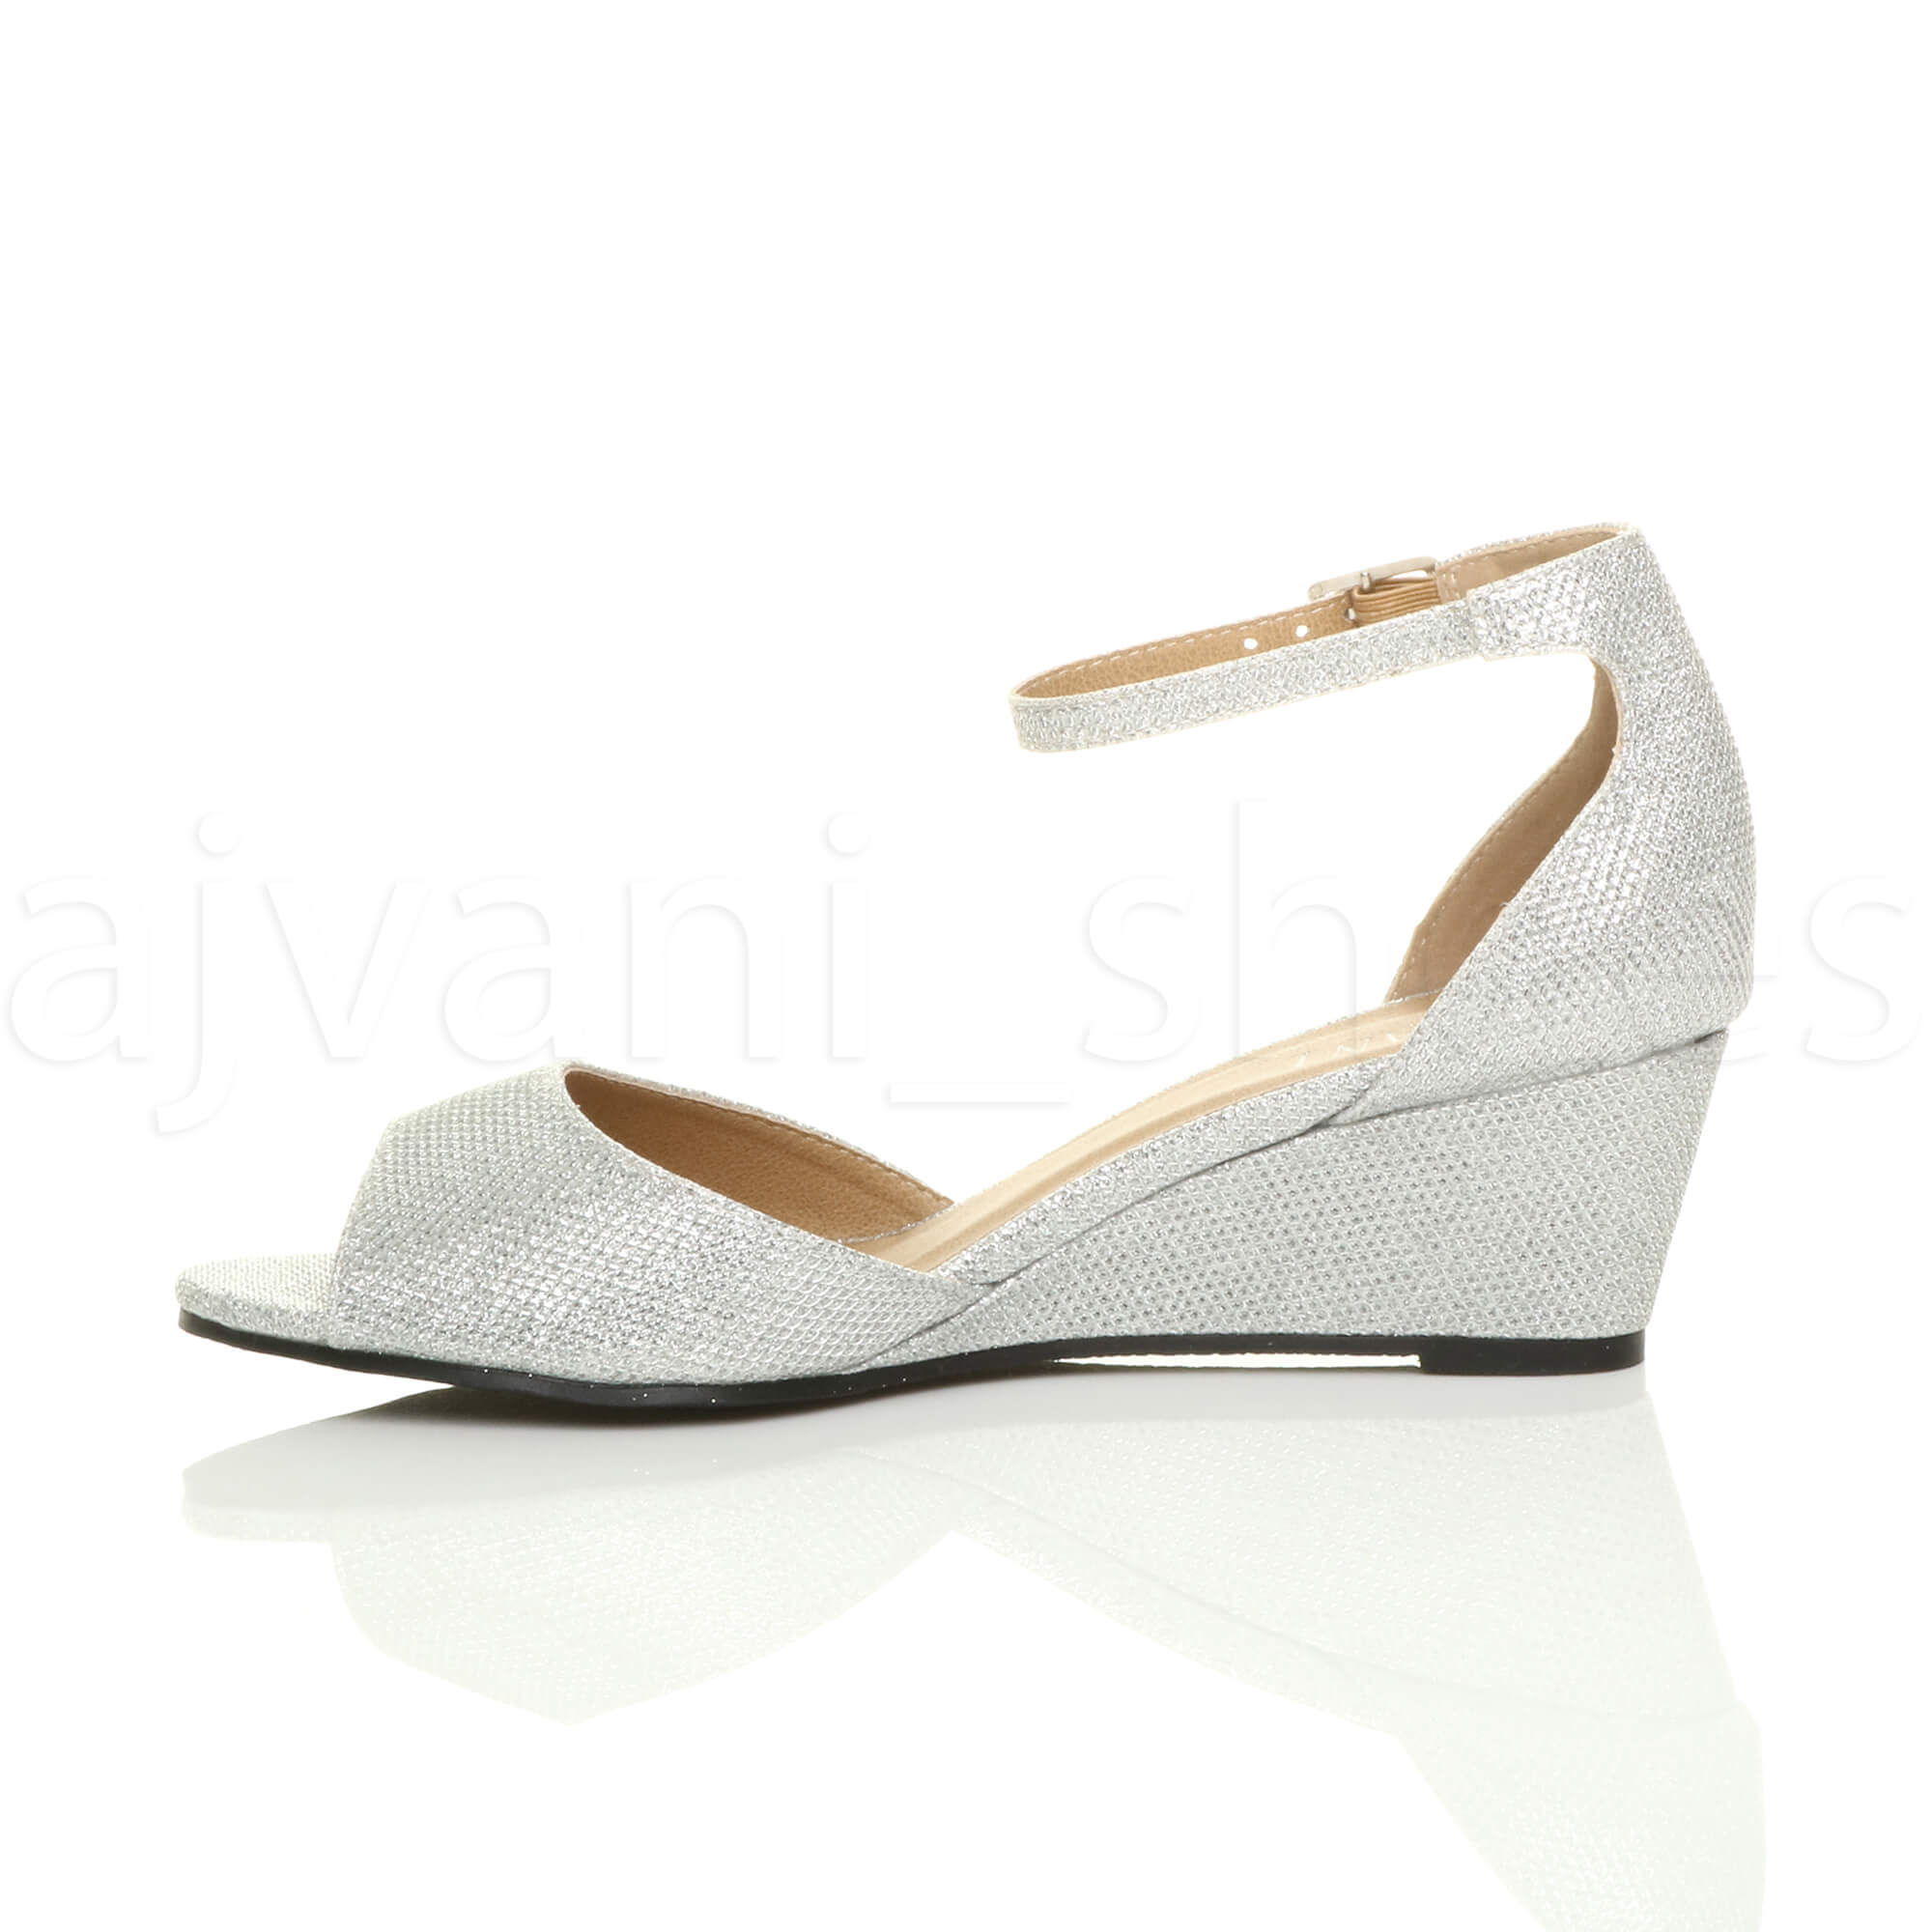 WOMENS-LADIES-LOW-MID-WEDGE-HEEL-ANKLE-STRAP-SMART-CASUAL-EVENING-SANDALS-SIZE thumbnail 140